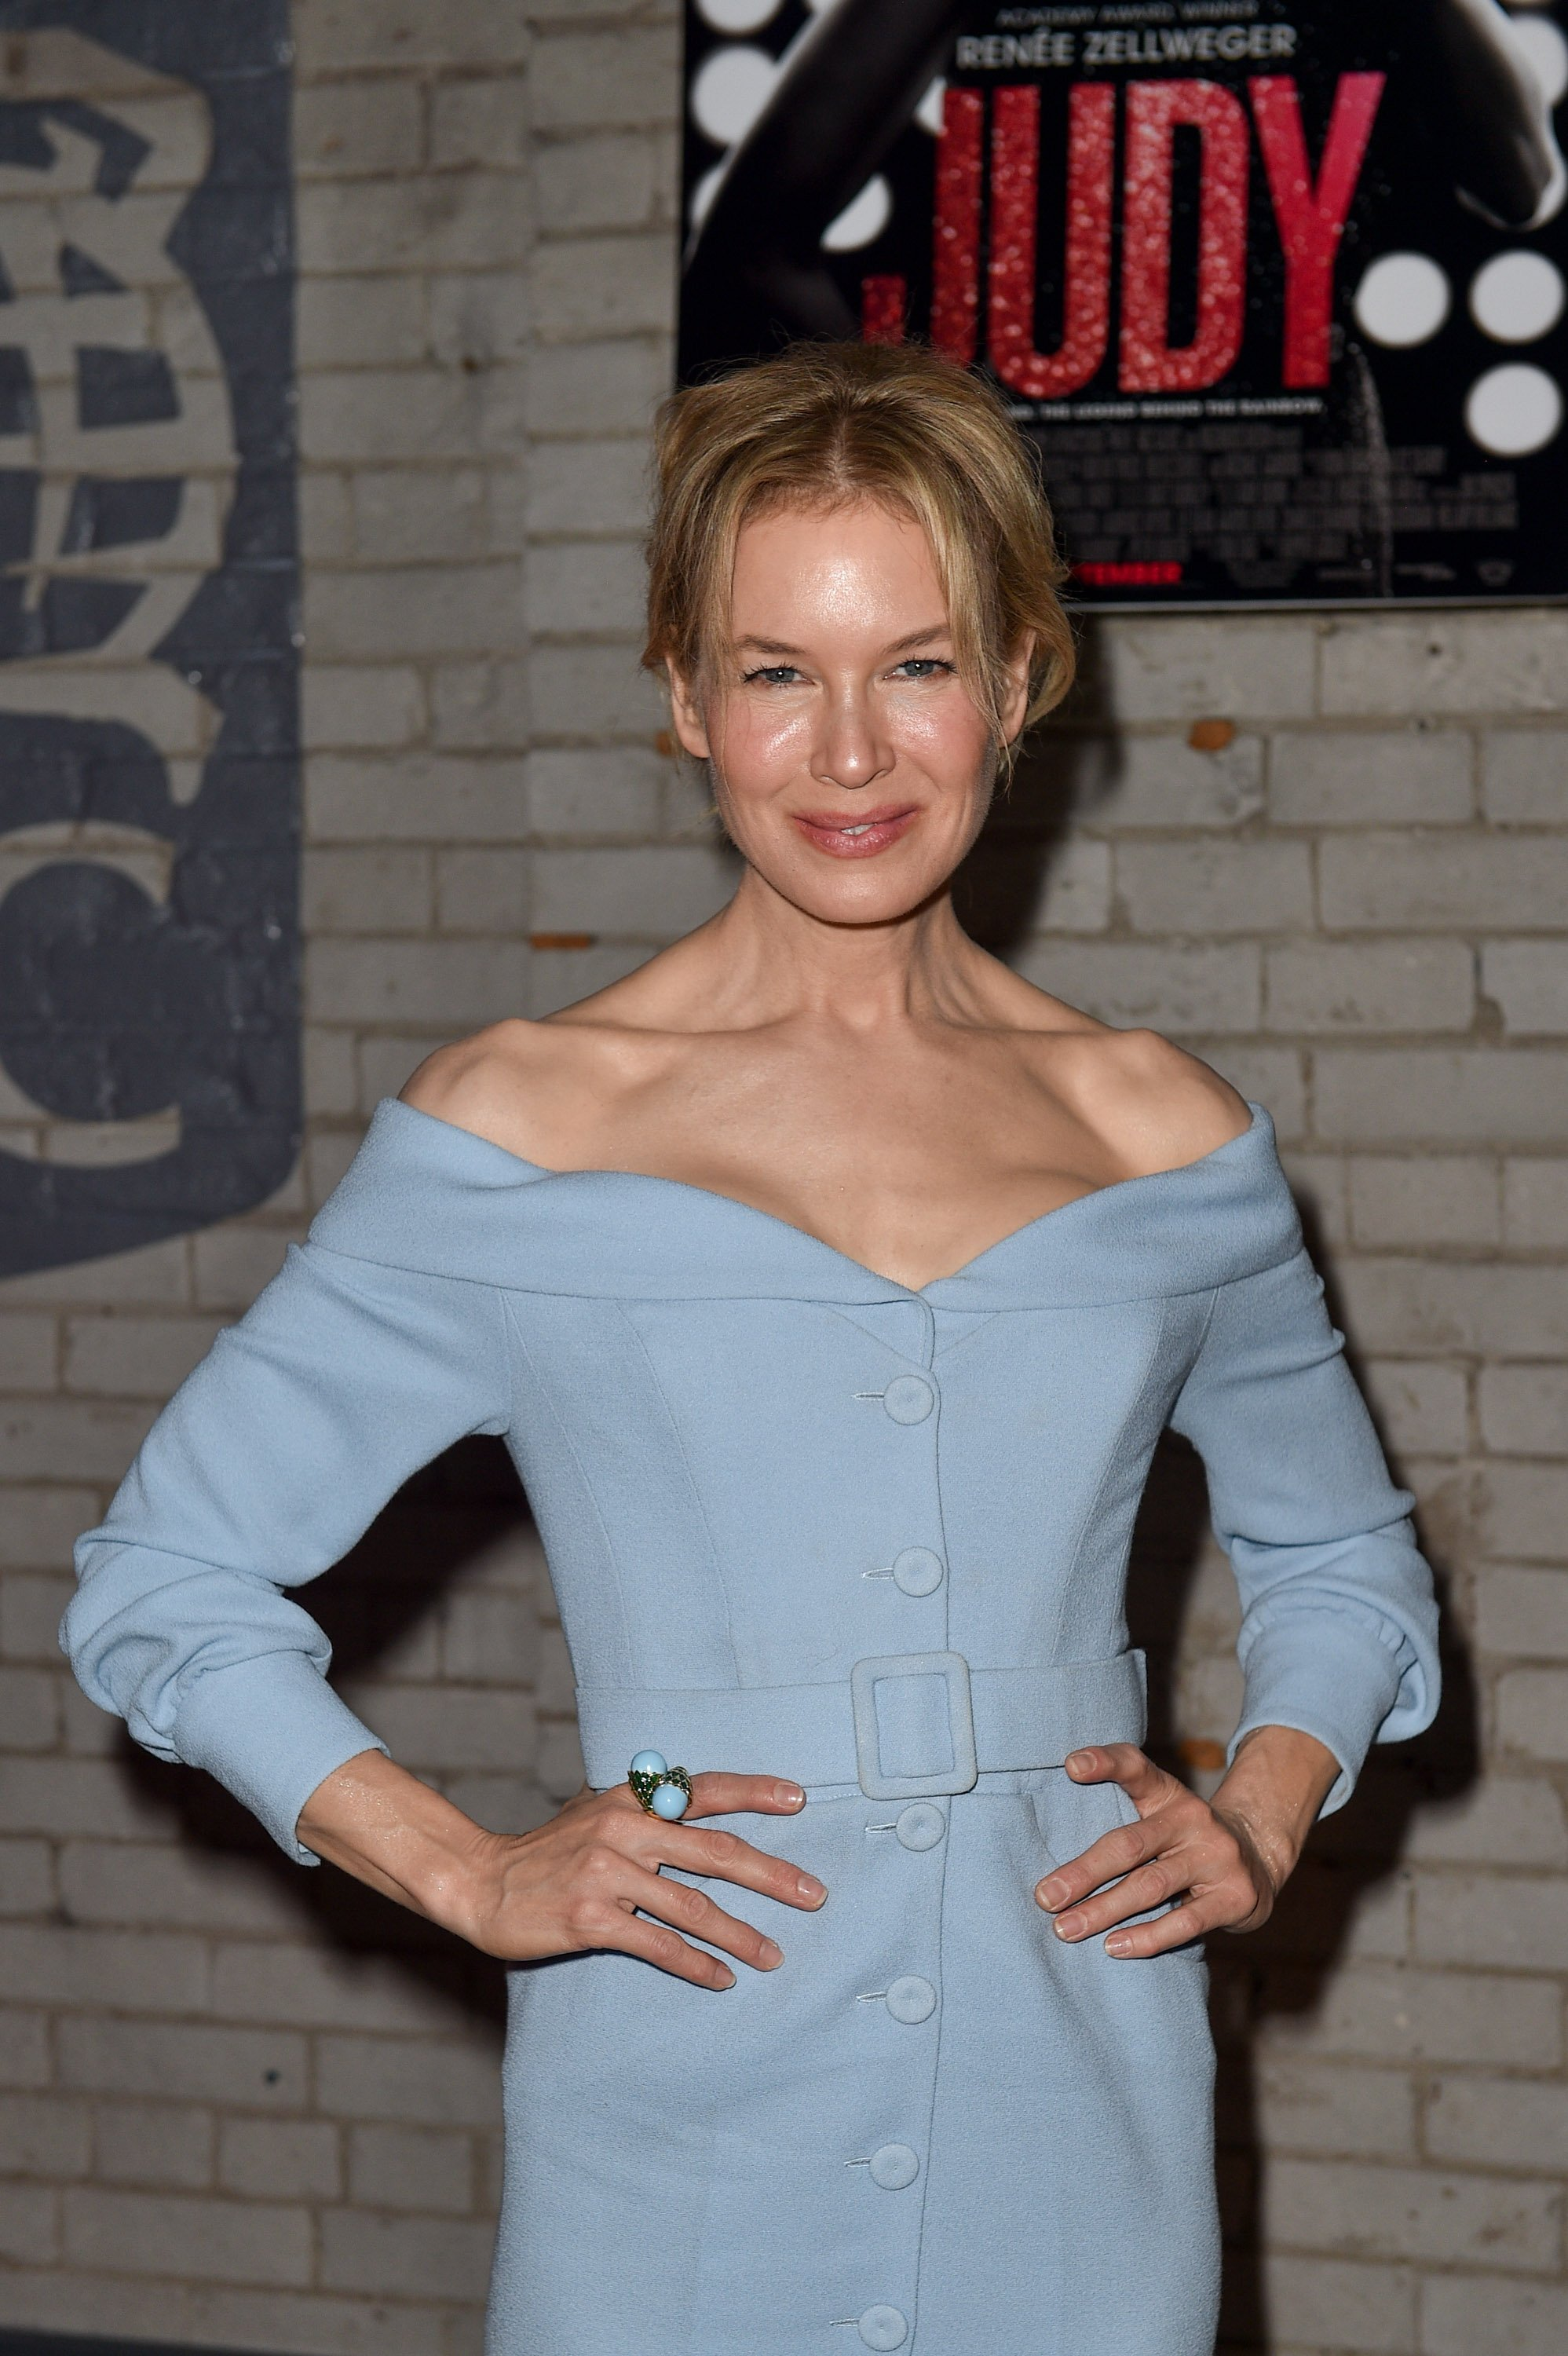 """Rene Zellweger attends the RBC Hosted """"Judy"""" Cocktail Party on September 10, 2019 in Toronto, Canada 